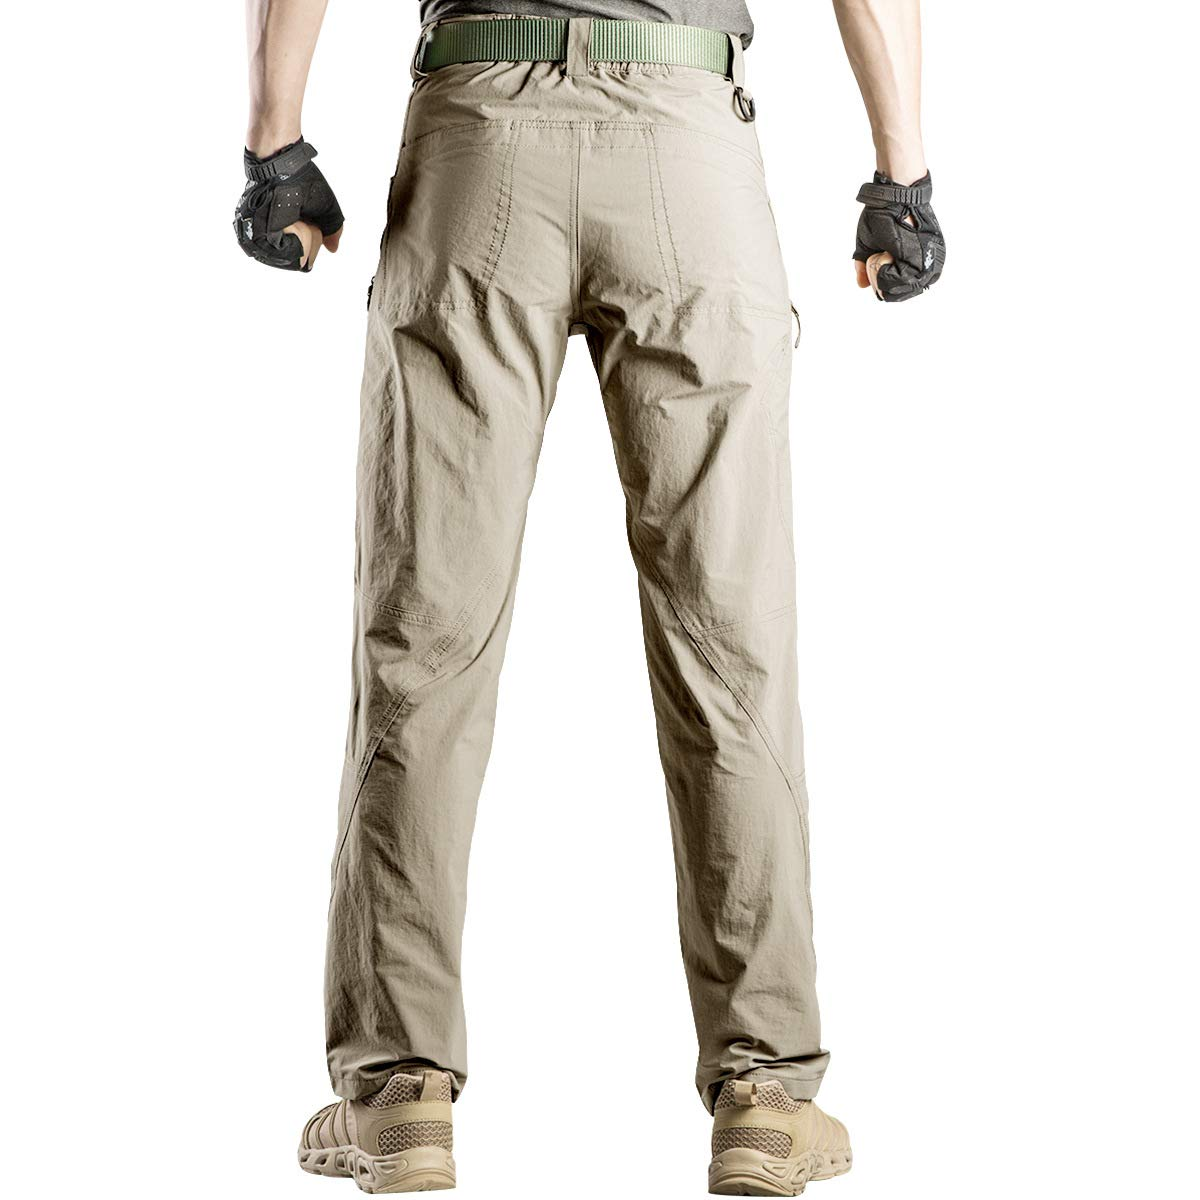 FREE SOLDIER Men's Outdoor Quick Drying back